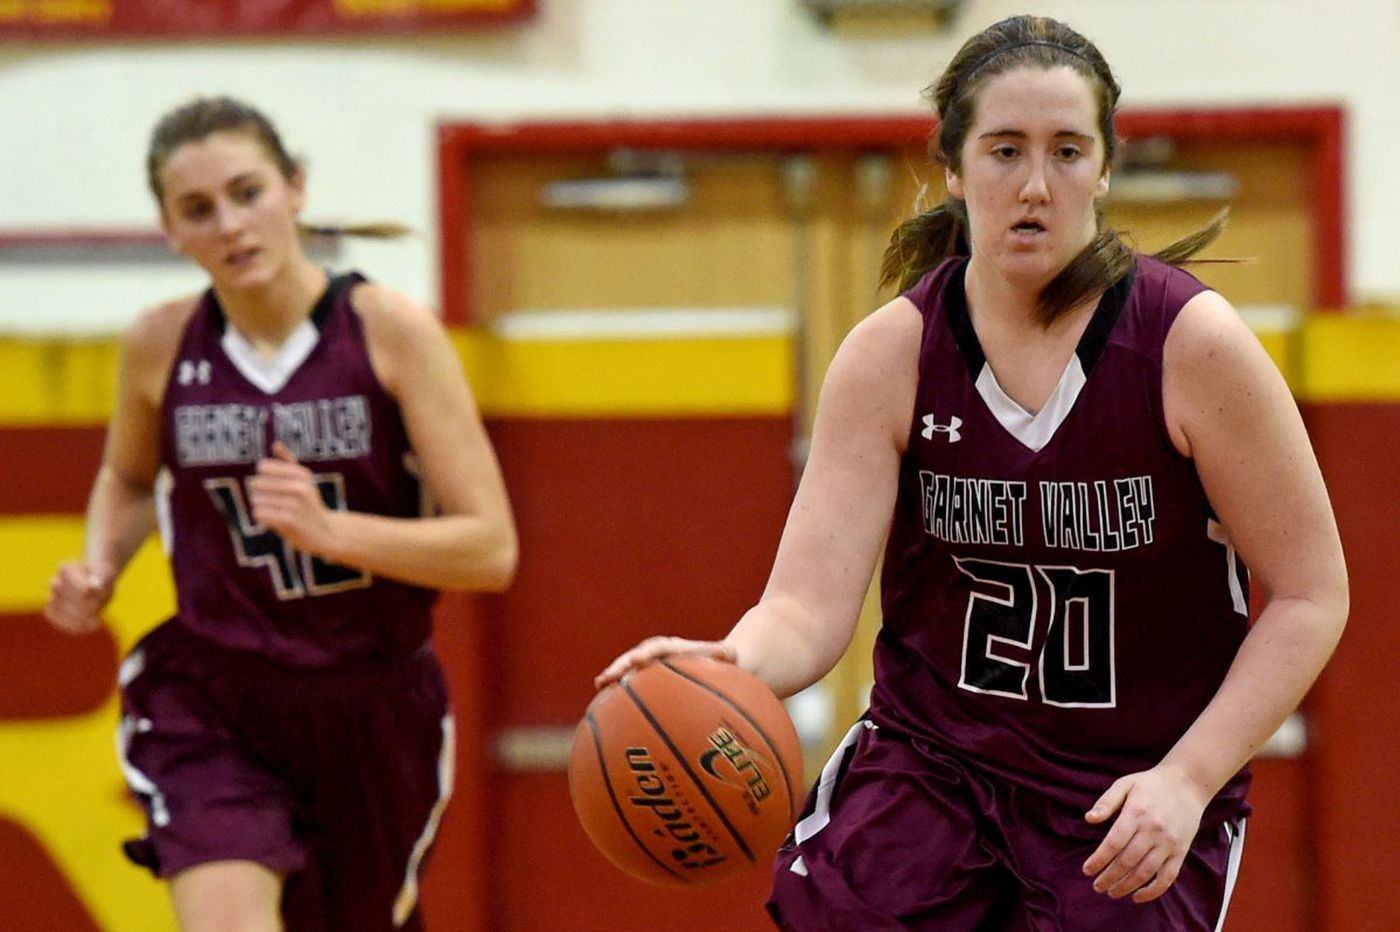 Emily McAteer becomes Garnet Valley's girls' basketball all-time leading scorer